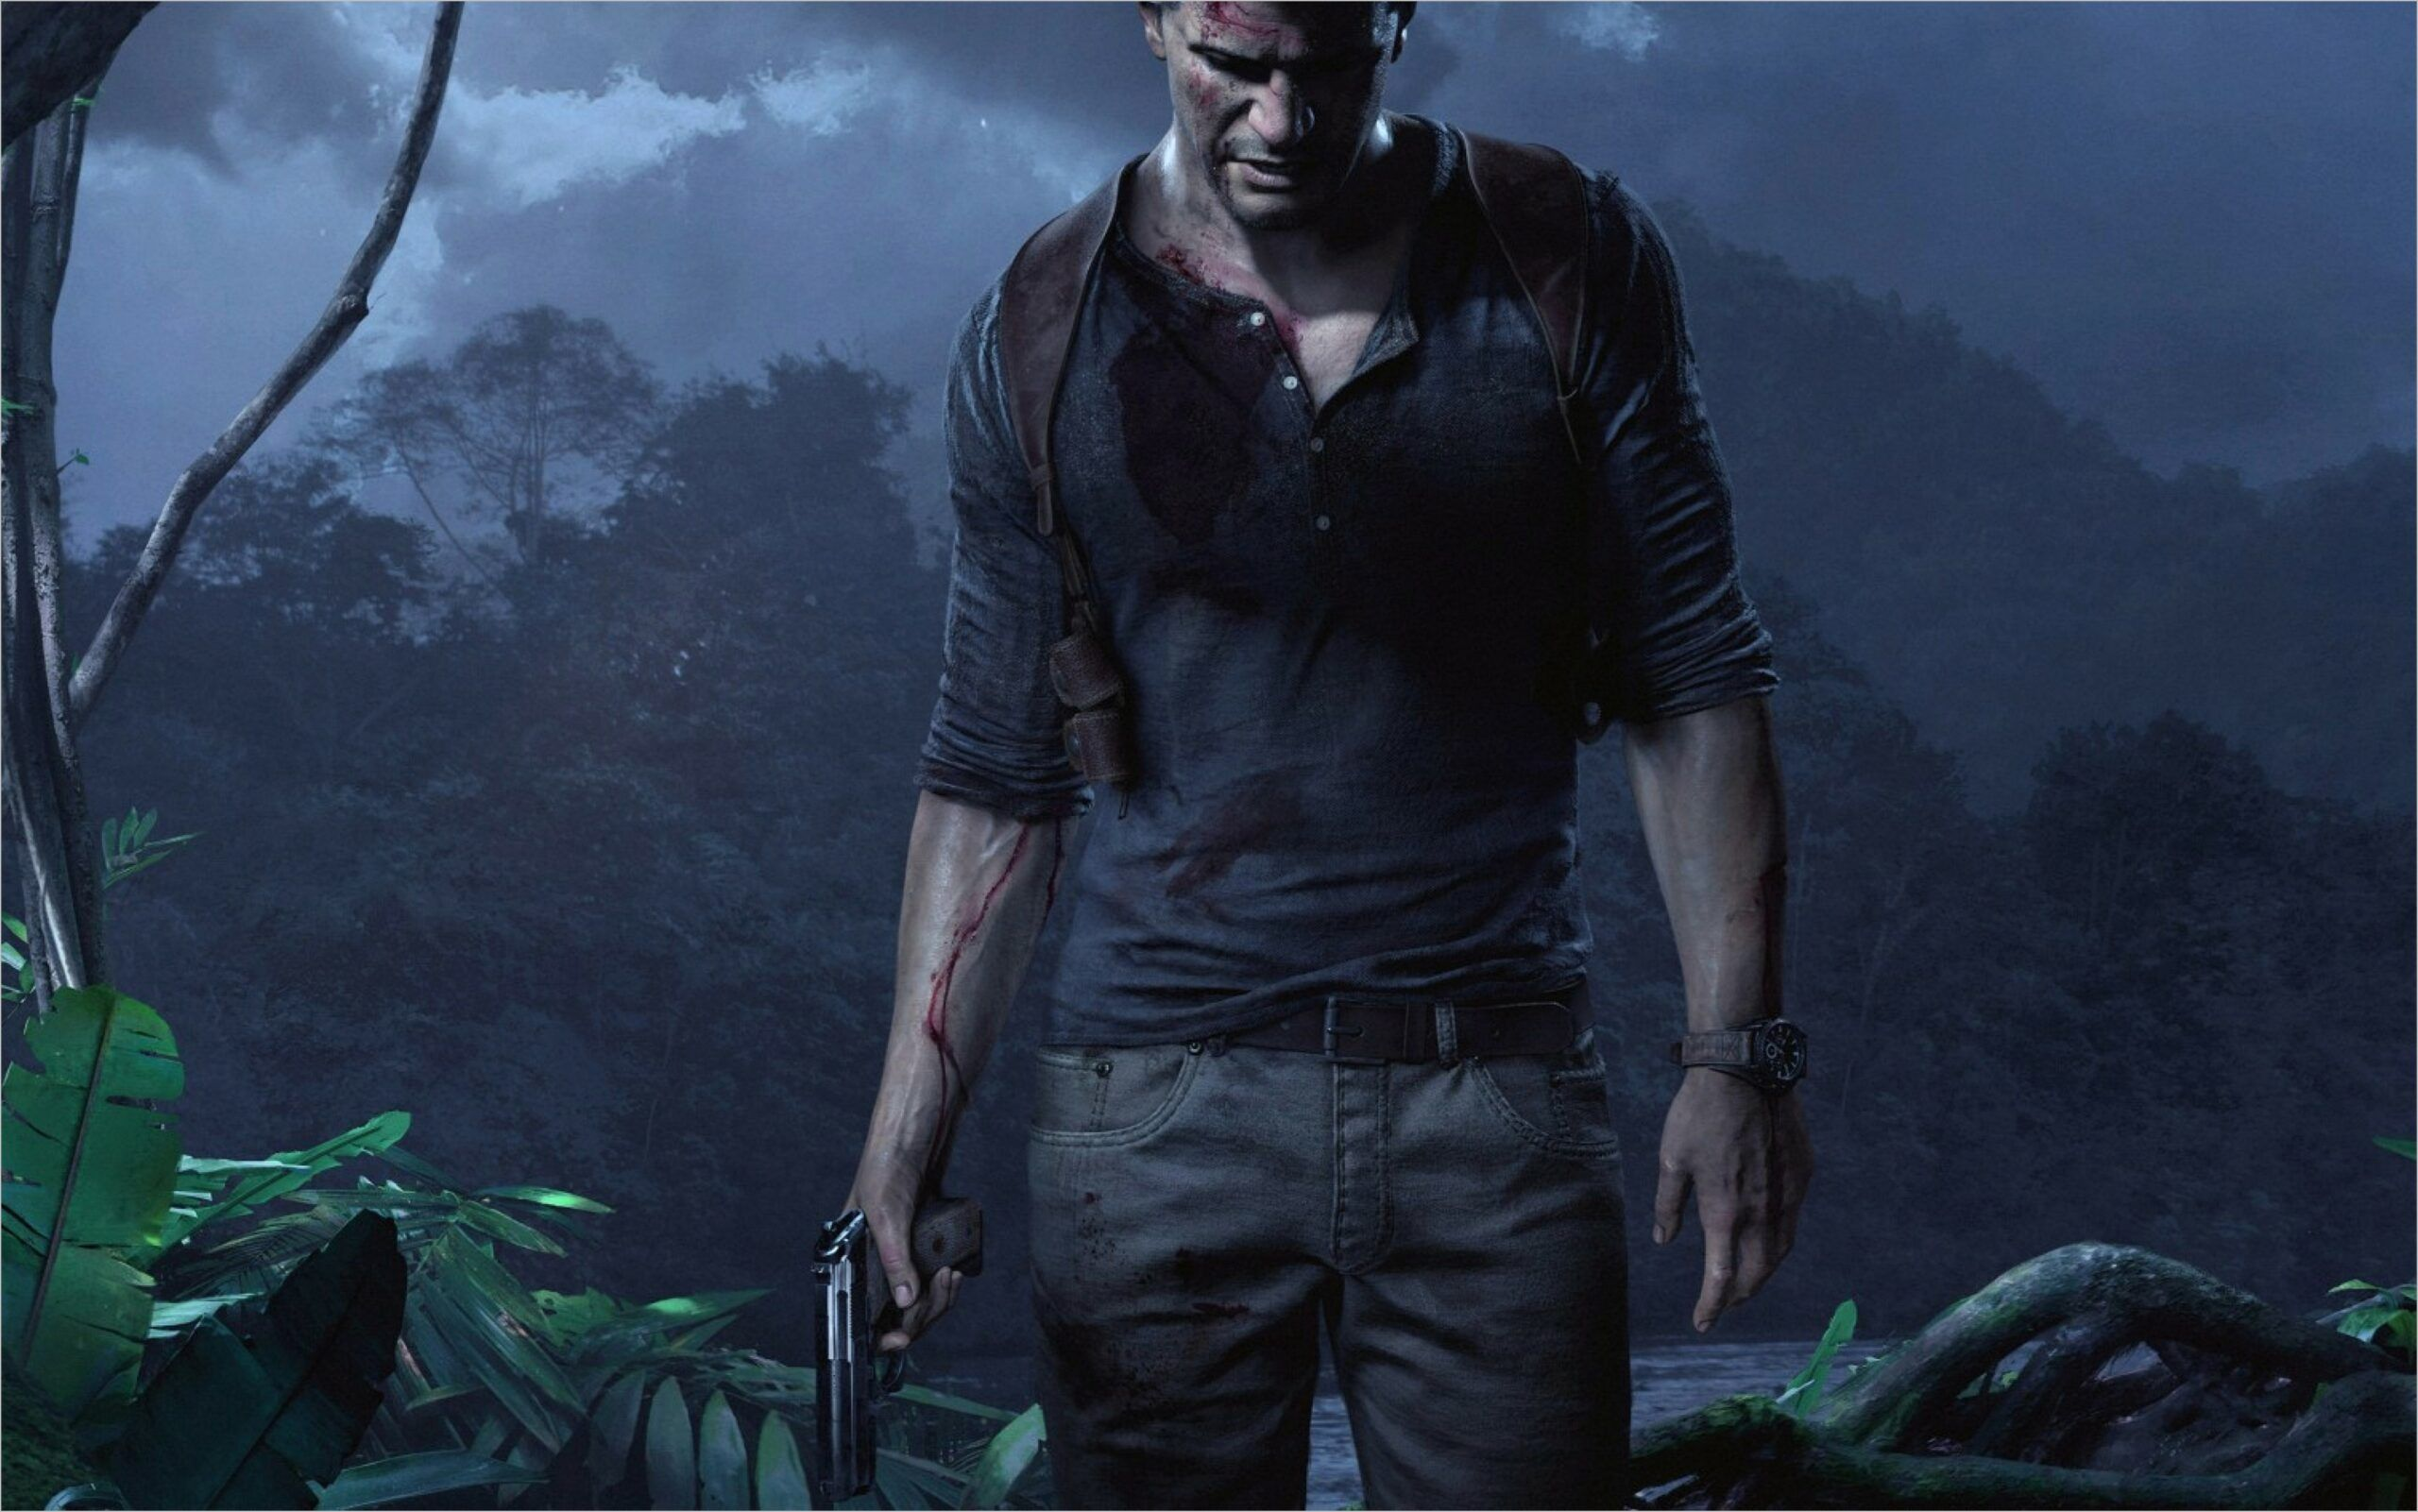 Nathan Drake Wallpaper 4k In 2020 Drake Wallpapers Nathan Drake Wallpaper